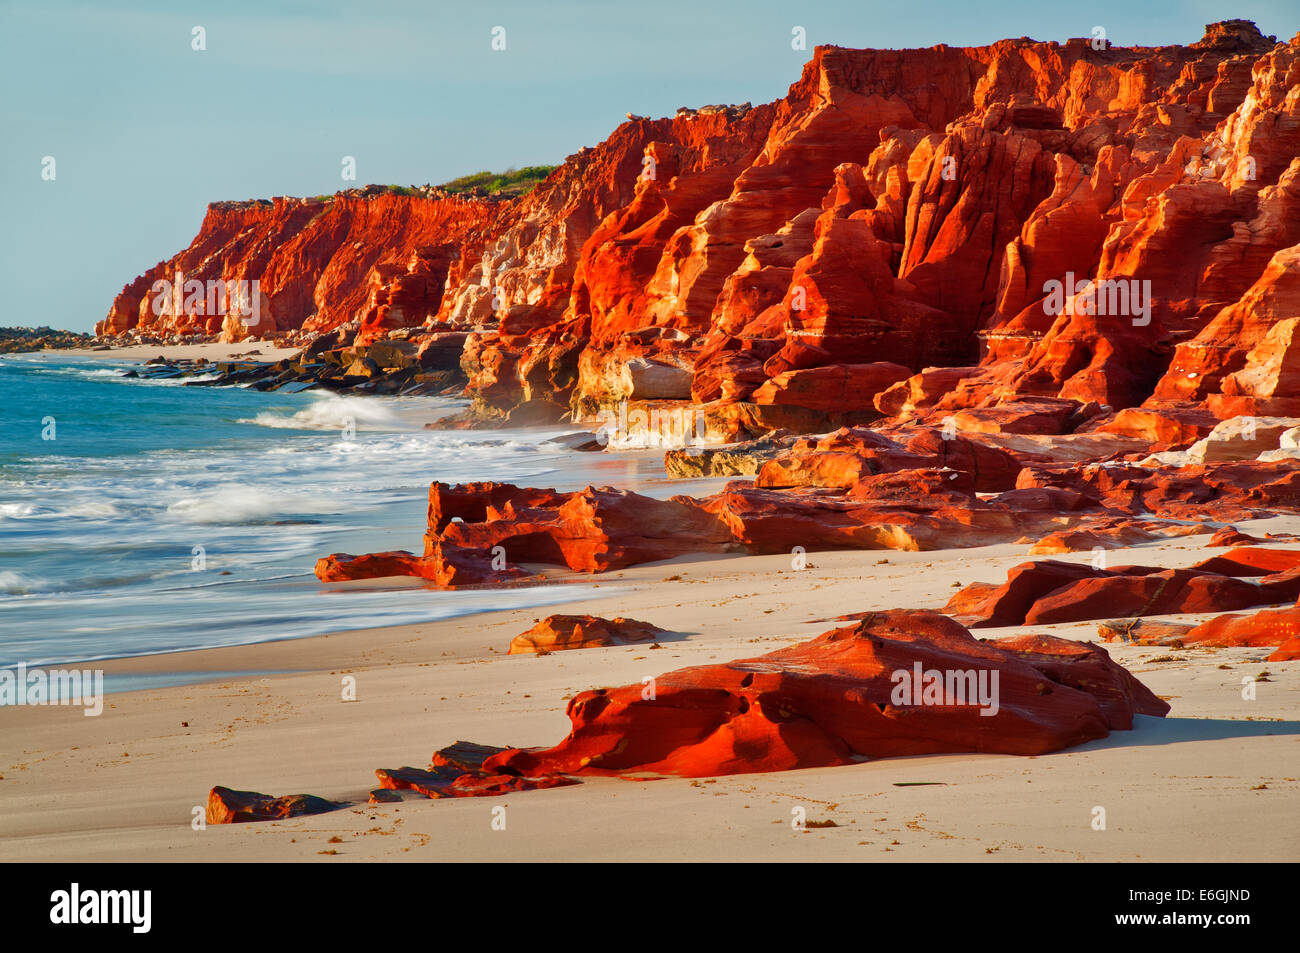 Red cliffs at Cape Leveque. - Stock Image